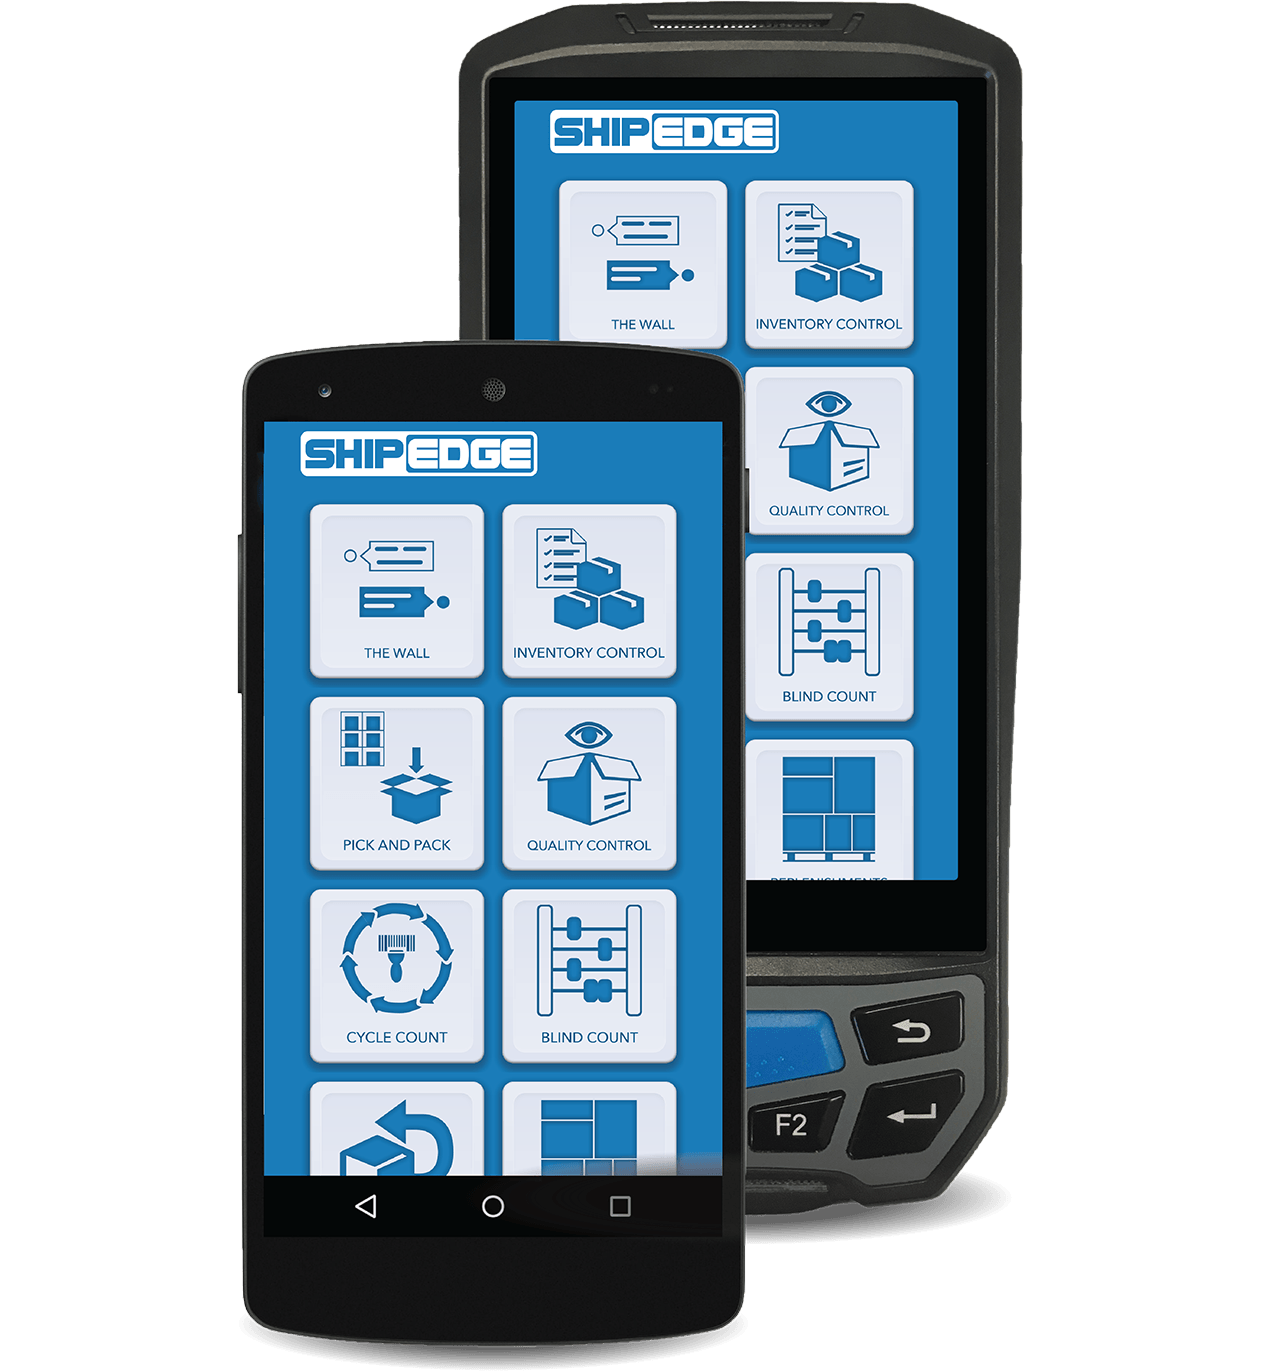 Shipedge Mobile Barcode Scanner